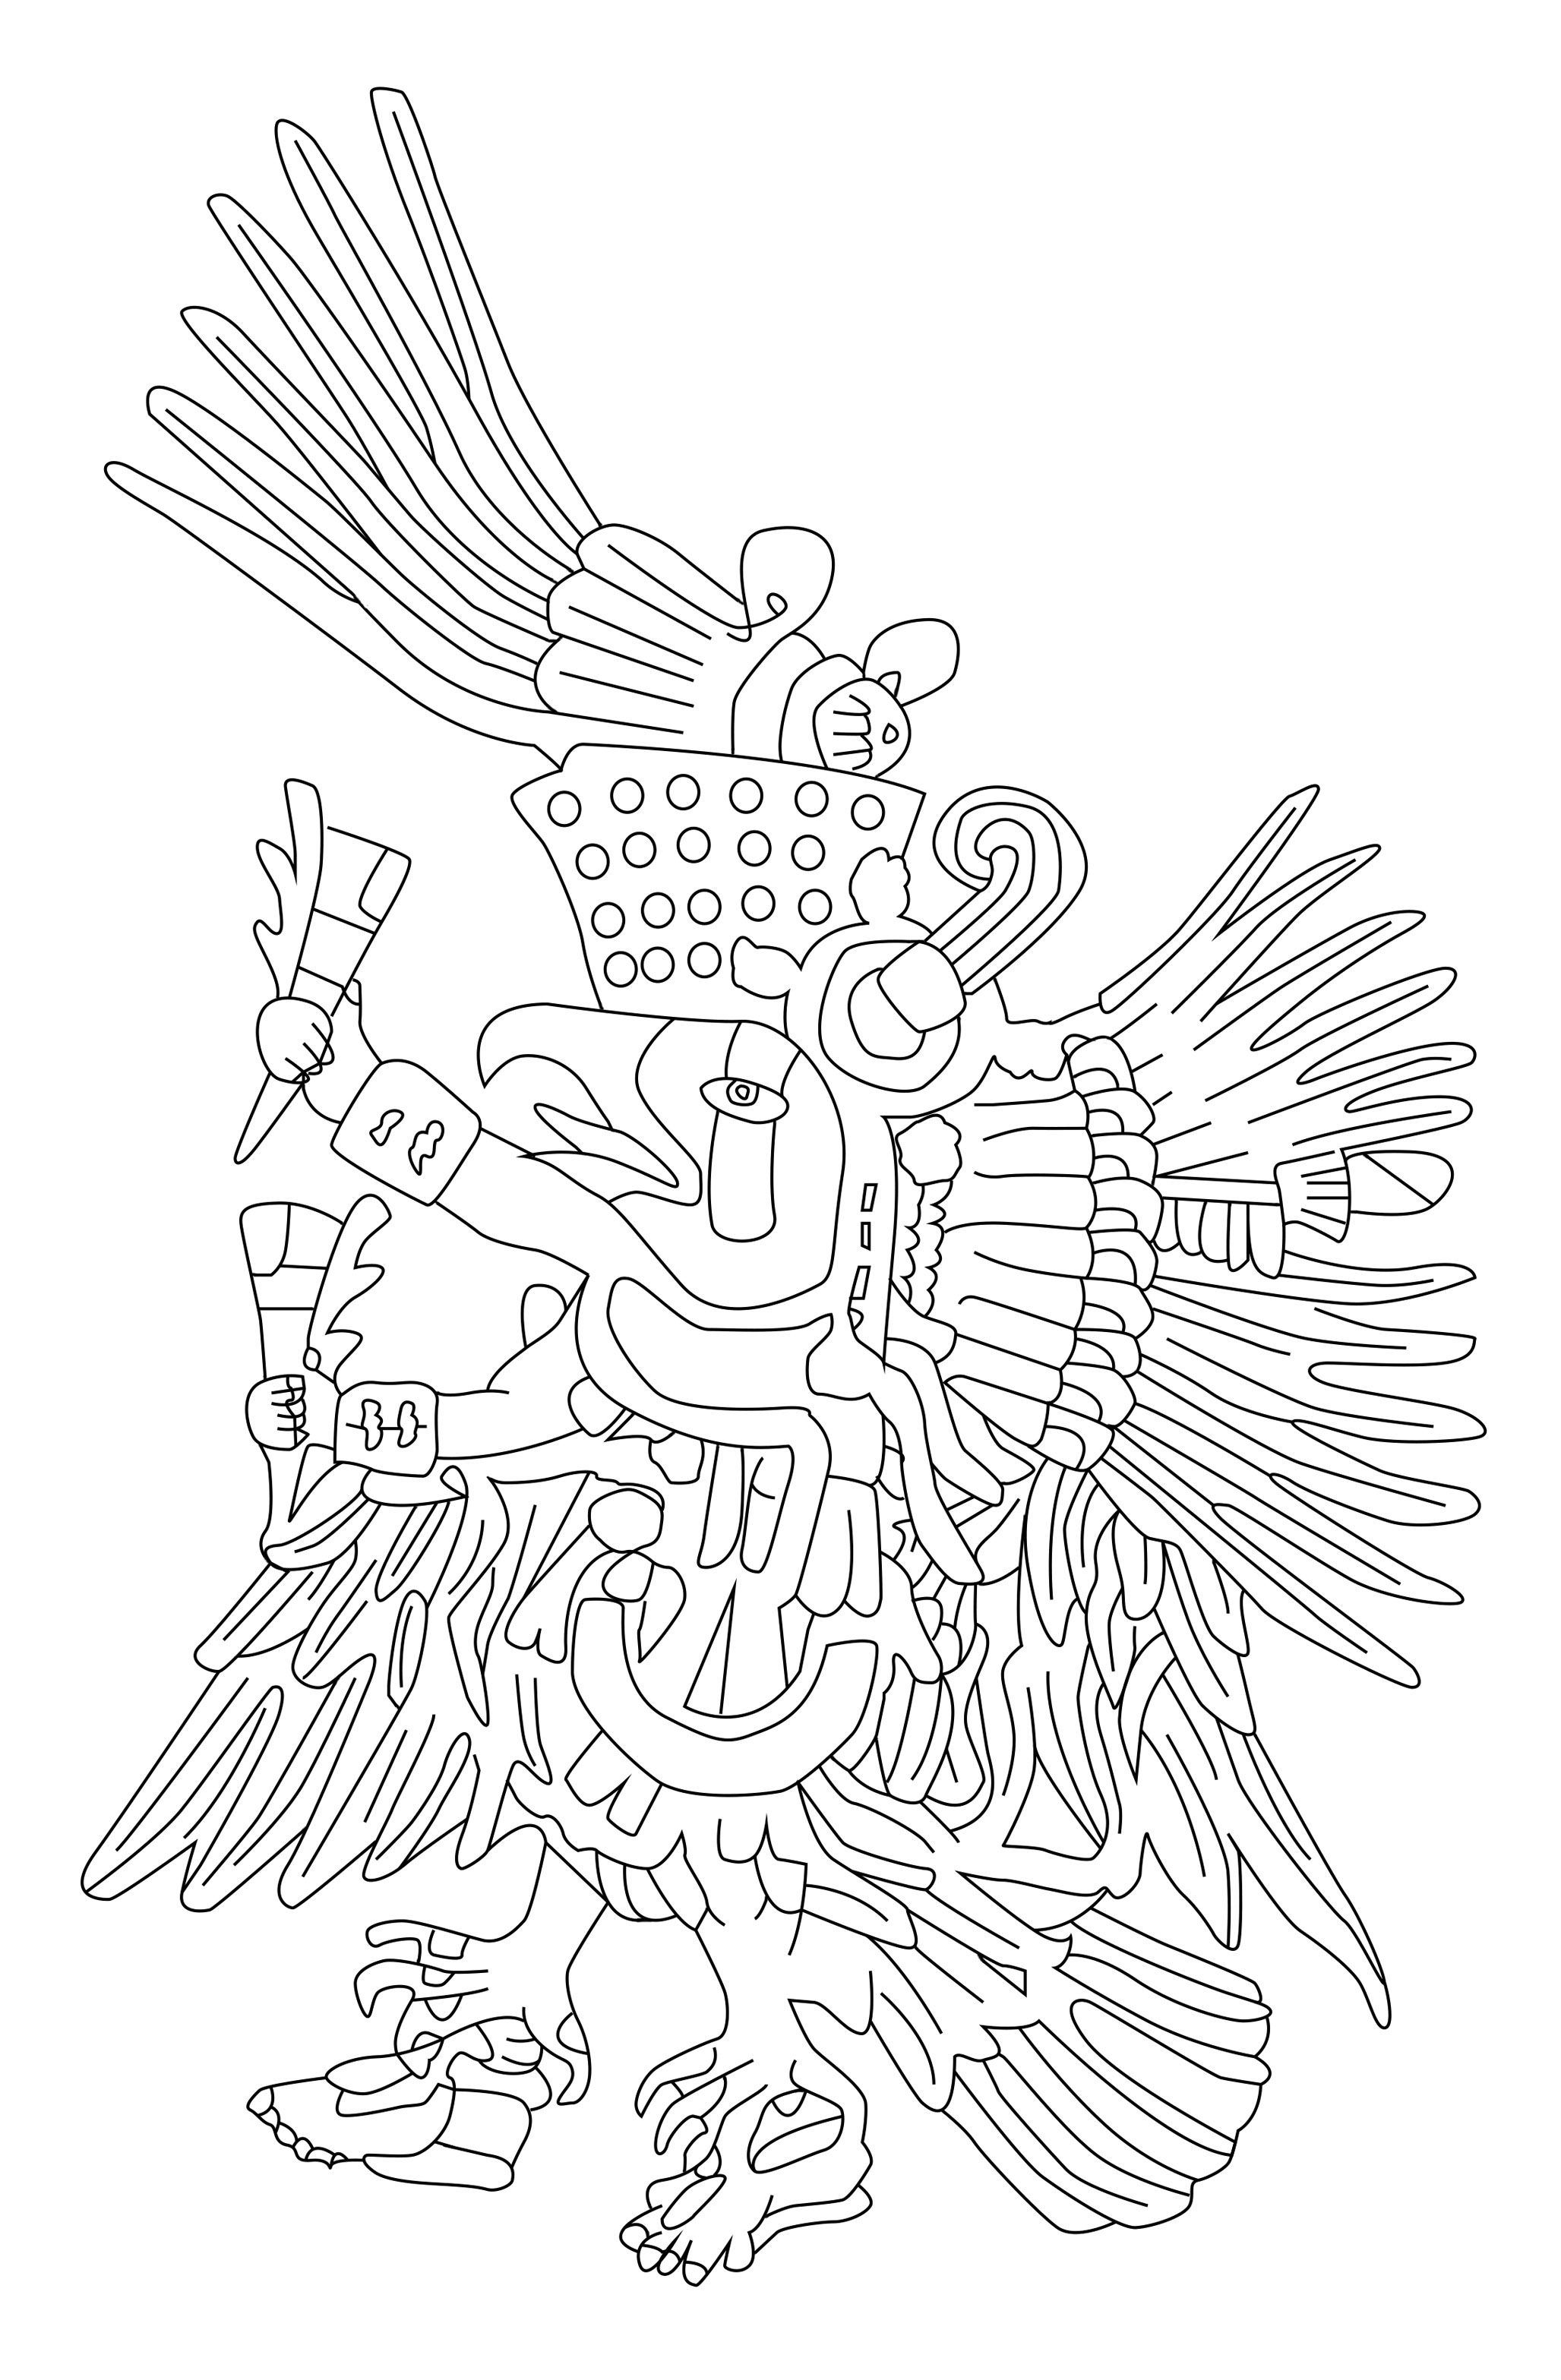 Quetzalcoatl is a Mesoamerican deity whose name comes from